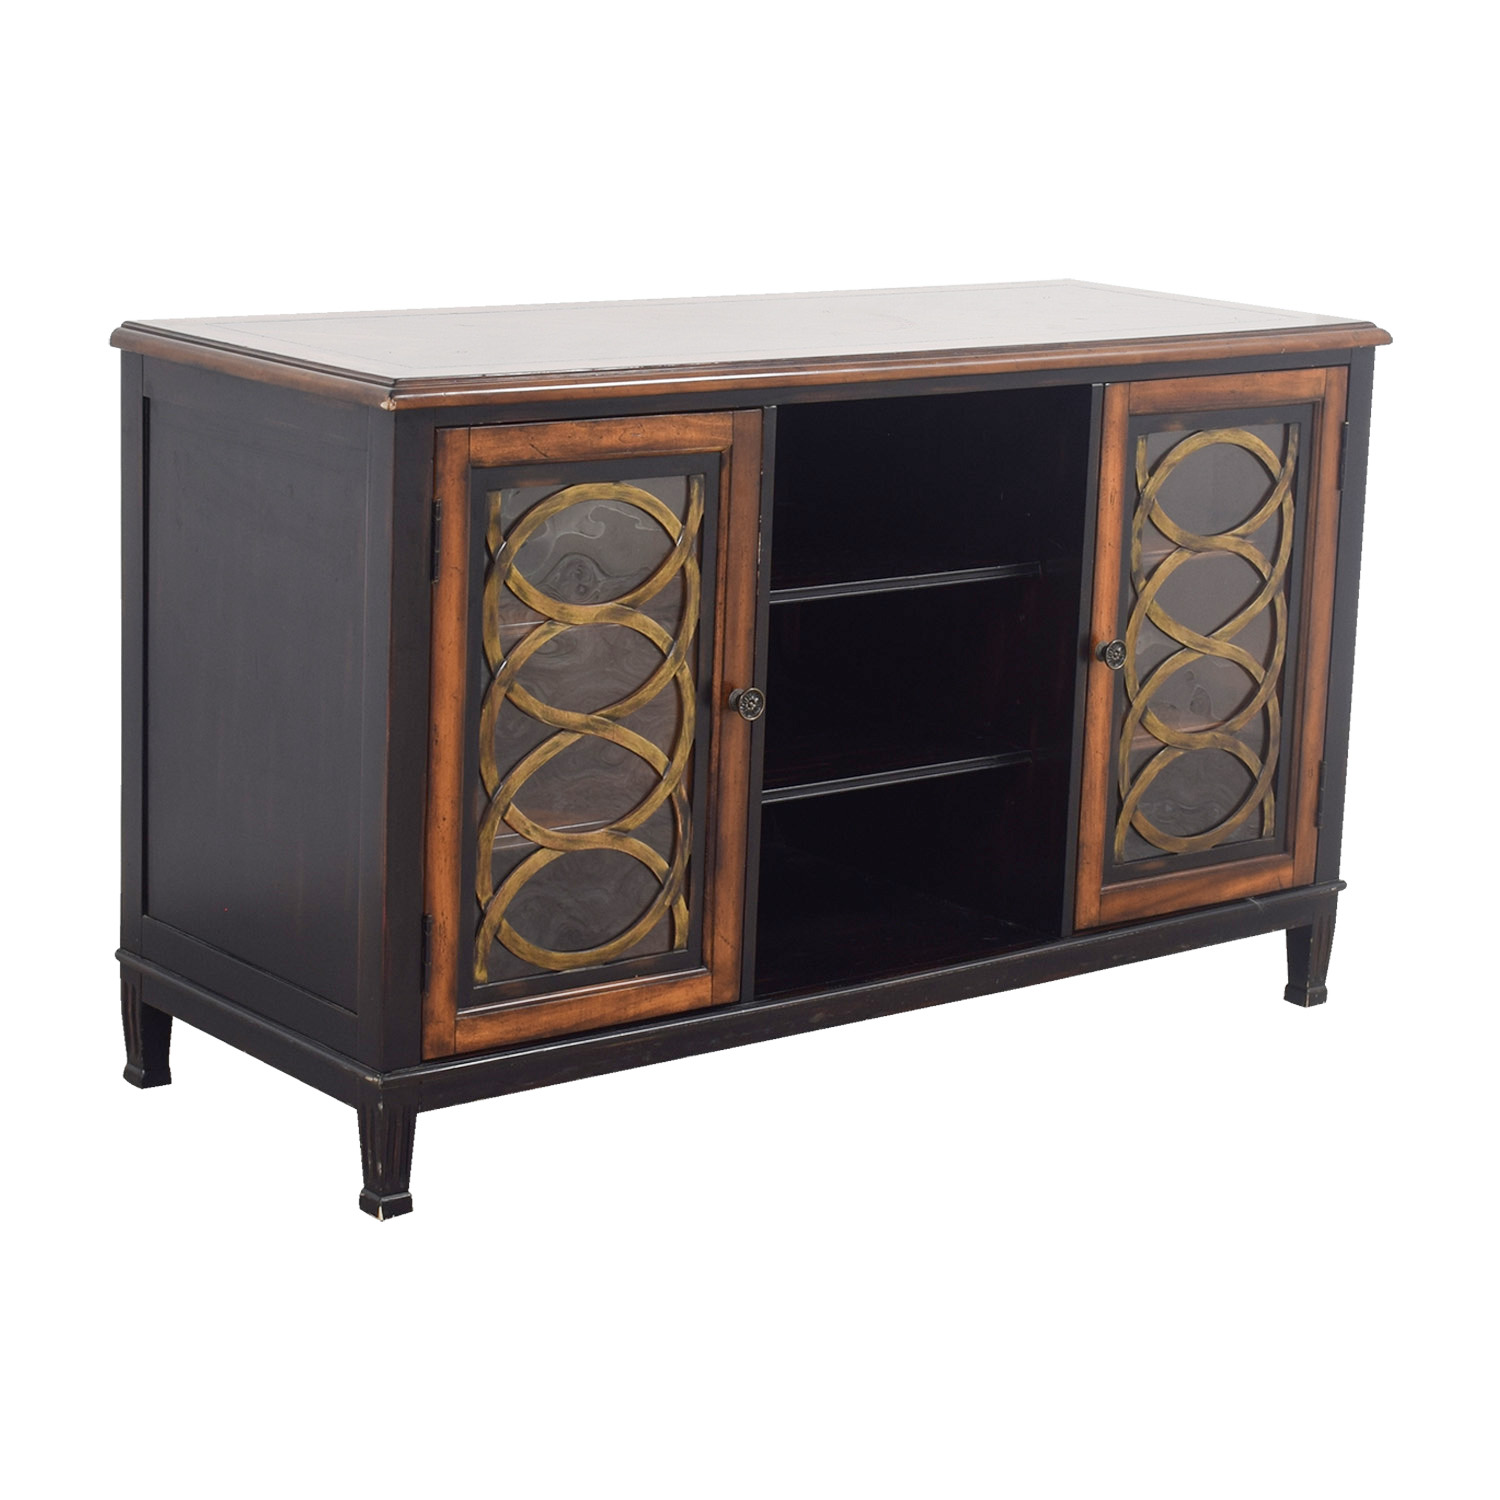 85 off horchow horchow tv media console storage for Tv console with storage